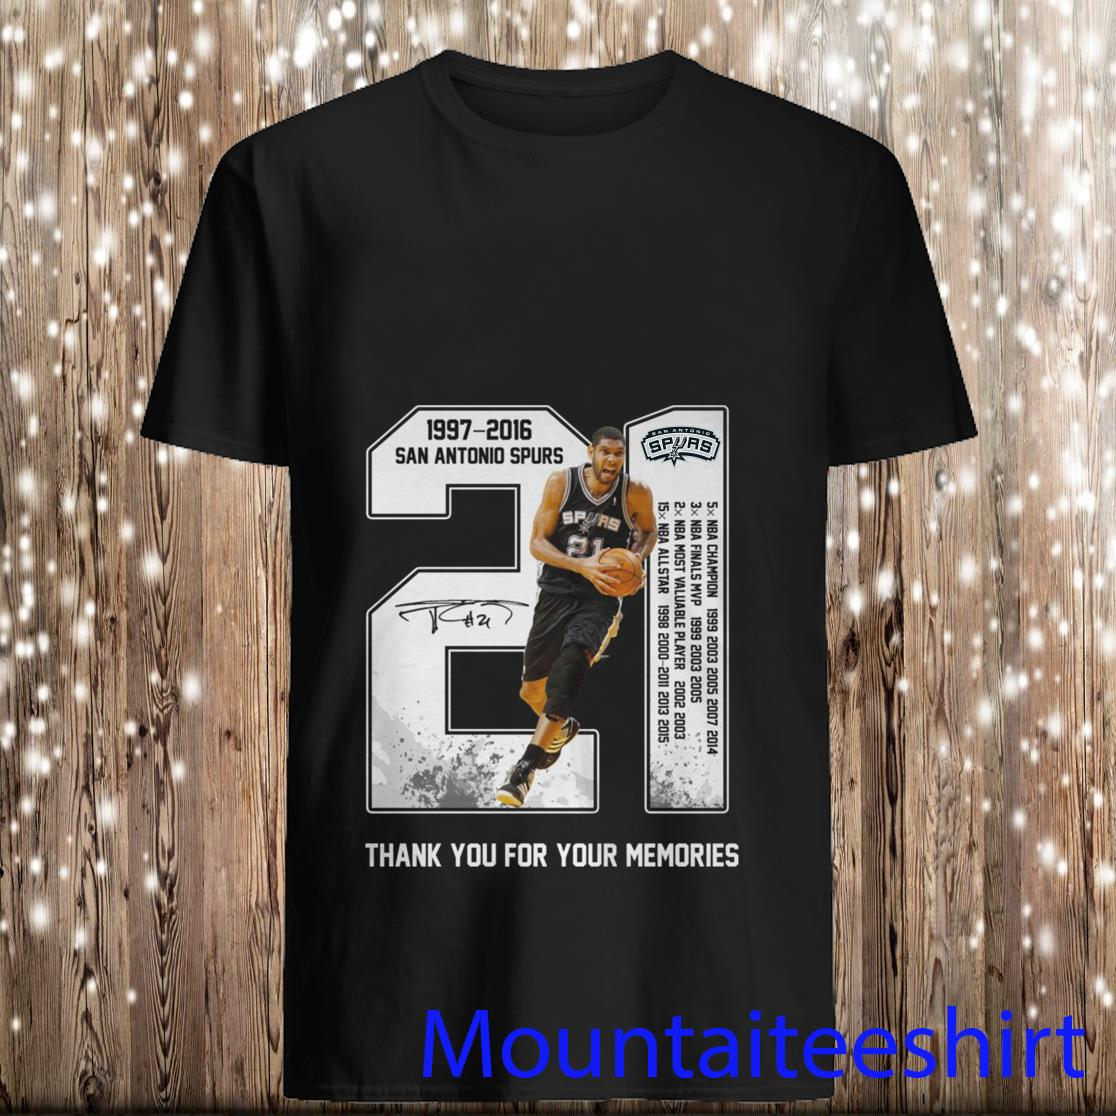 Tim duncan san antonio spurs 21 1977-2016 thank you for the memories shirt